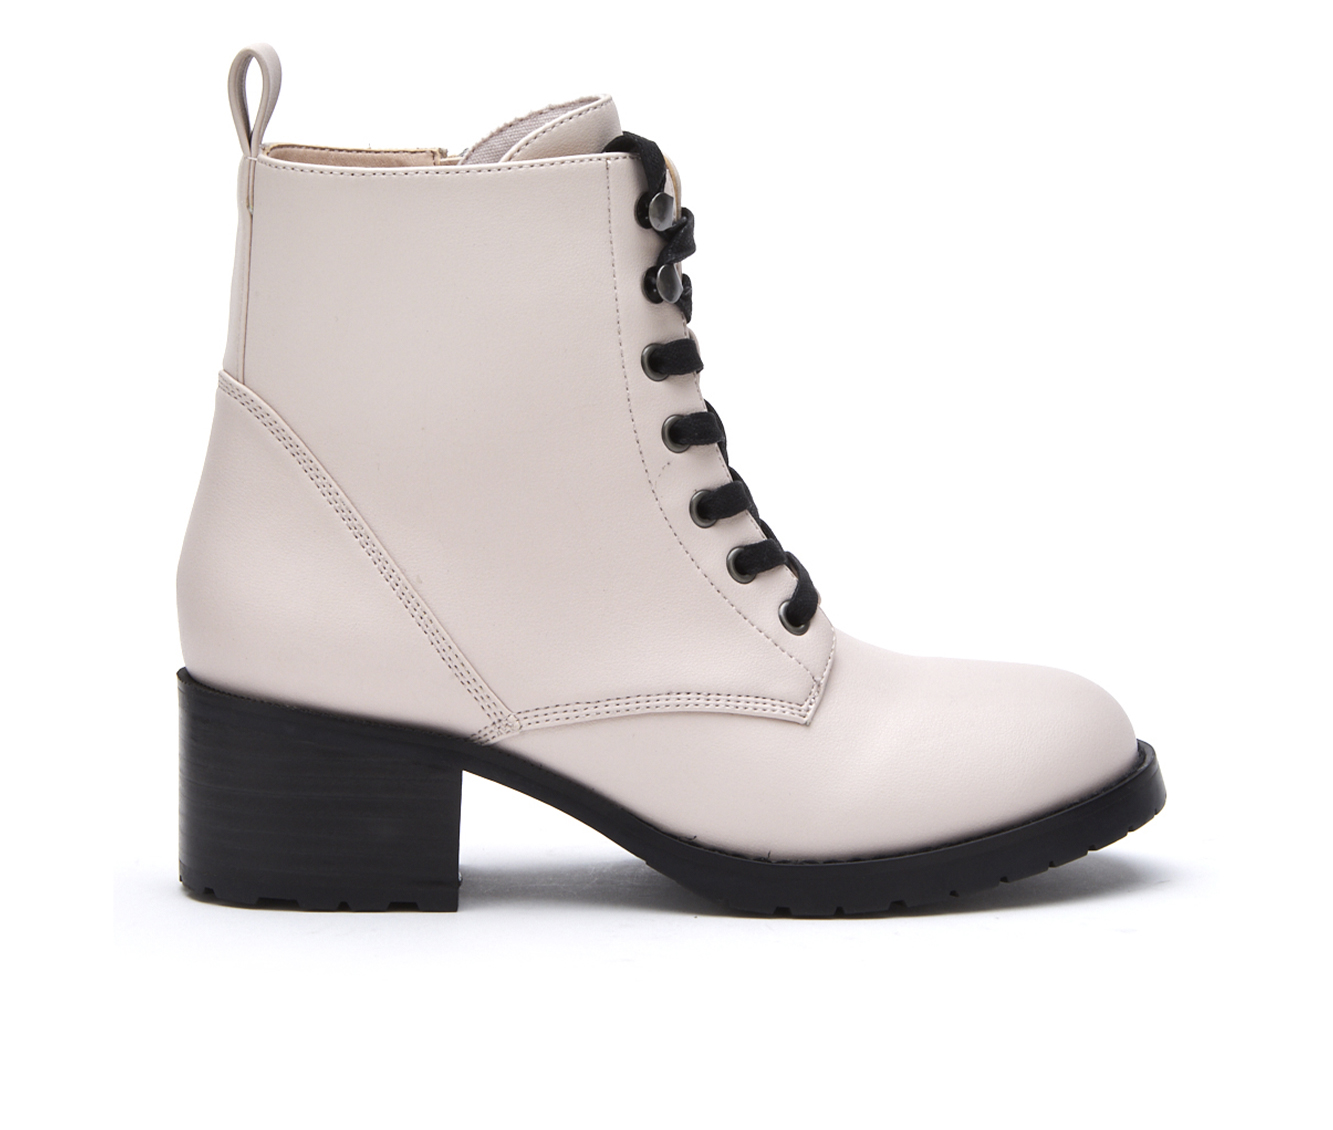 Coconuts Glacier Women's Boots (Pink - Faux Leather)